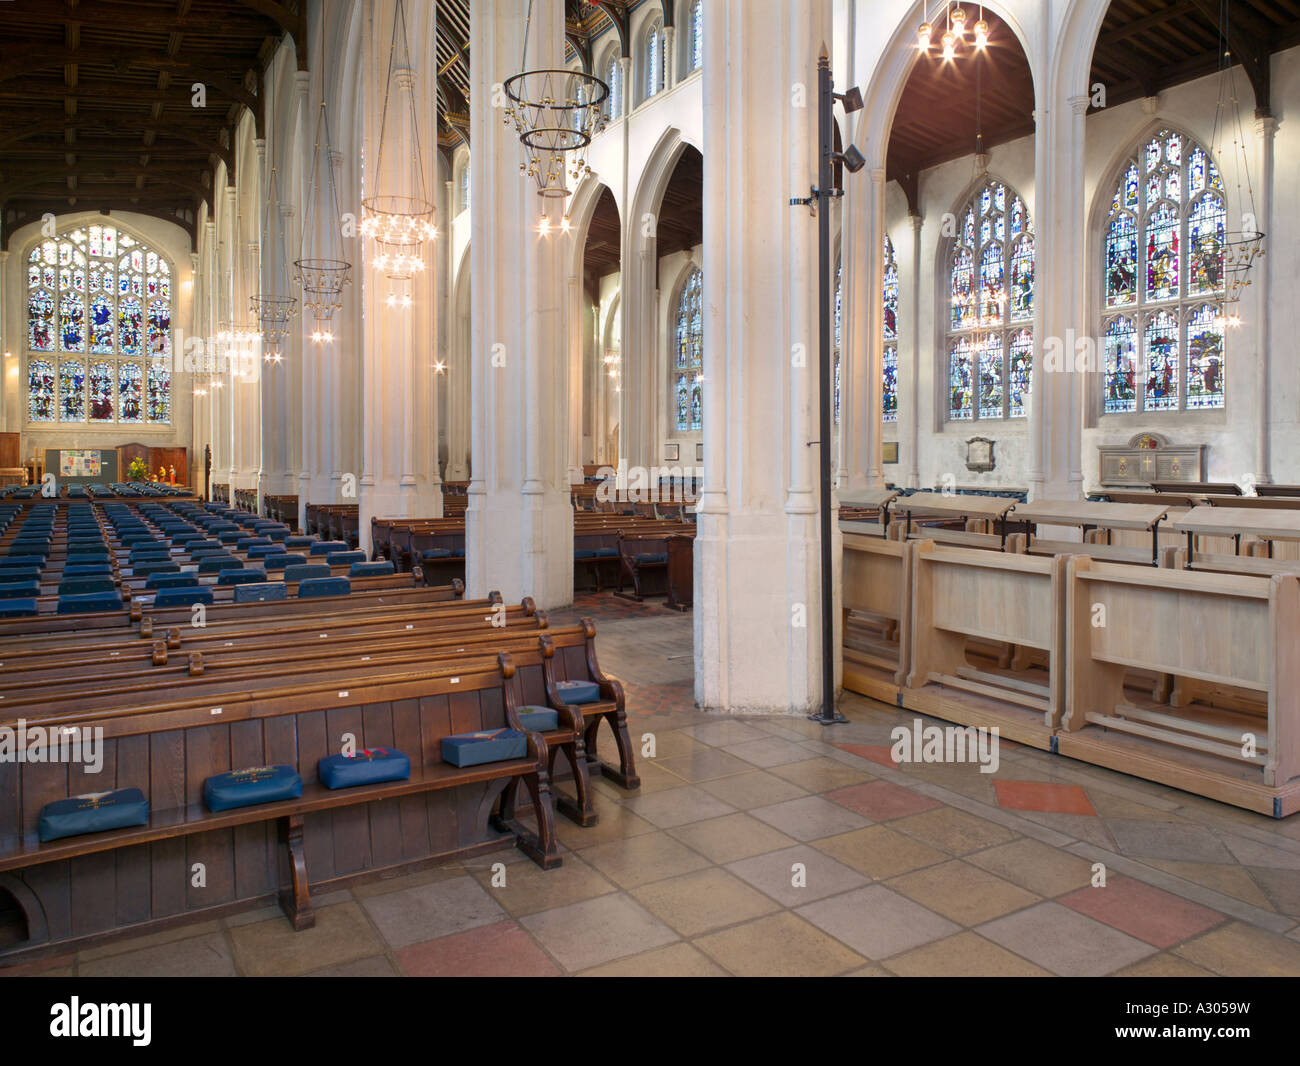 St Edmundsbury Cathedral interior view - Stock Image